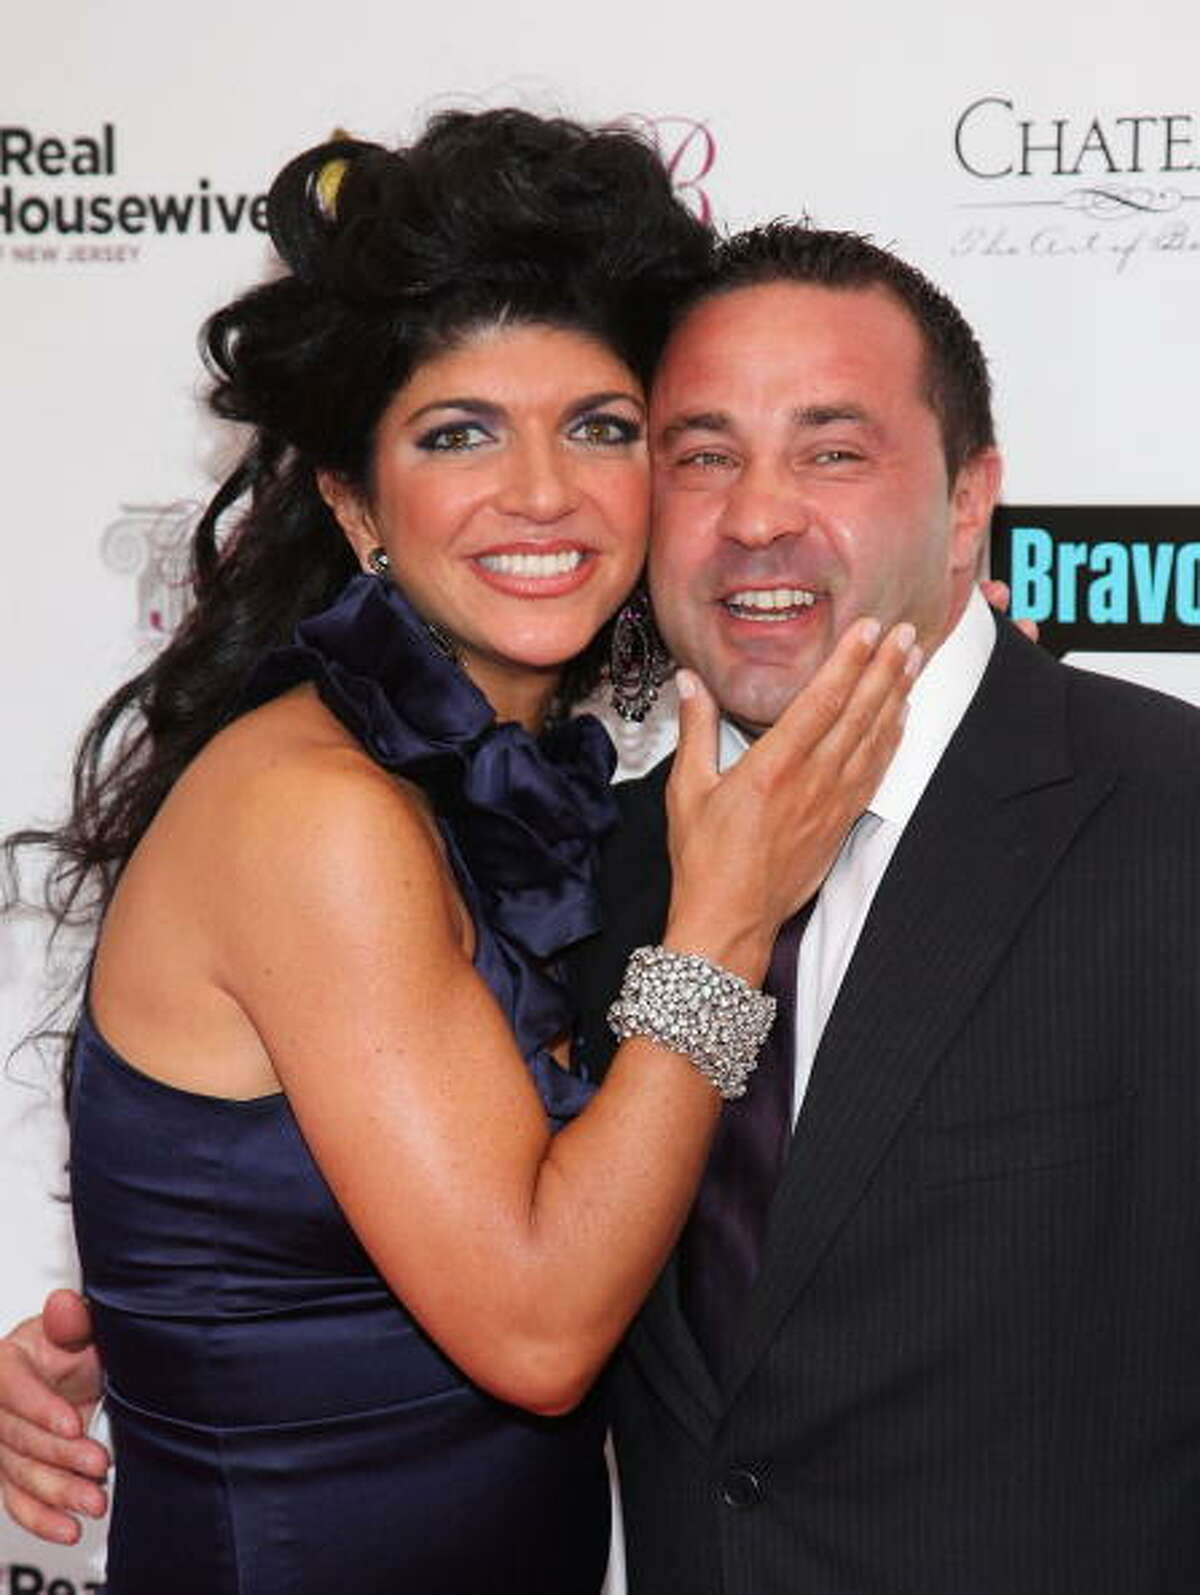 """THERESA GIUIDICE of Bravo's """"The Real Housewives of New Jersey."""" Nominated by azgirl101"""